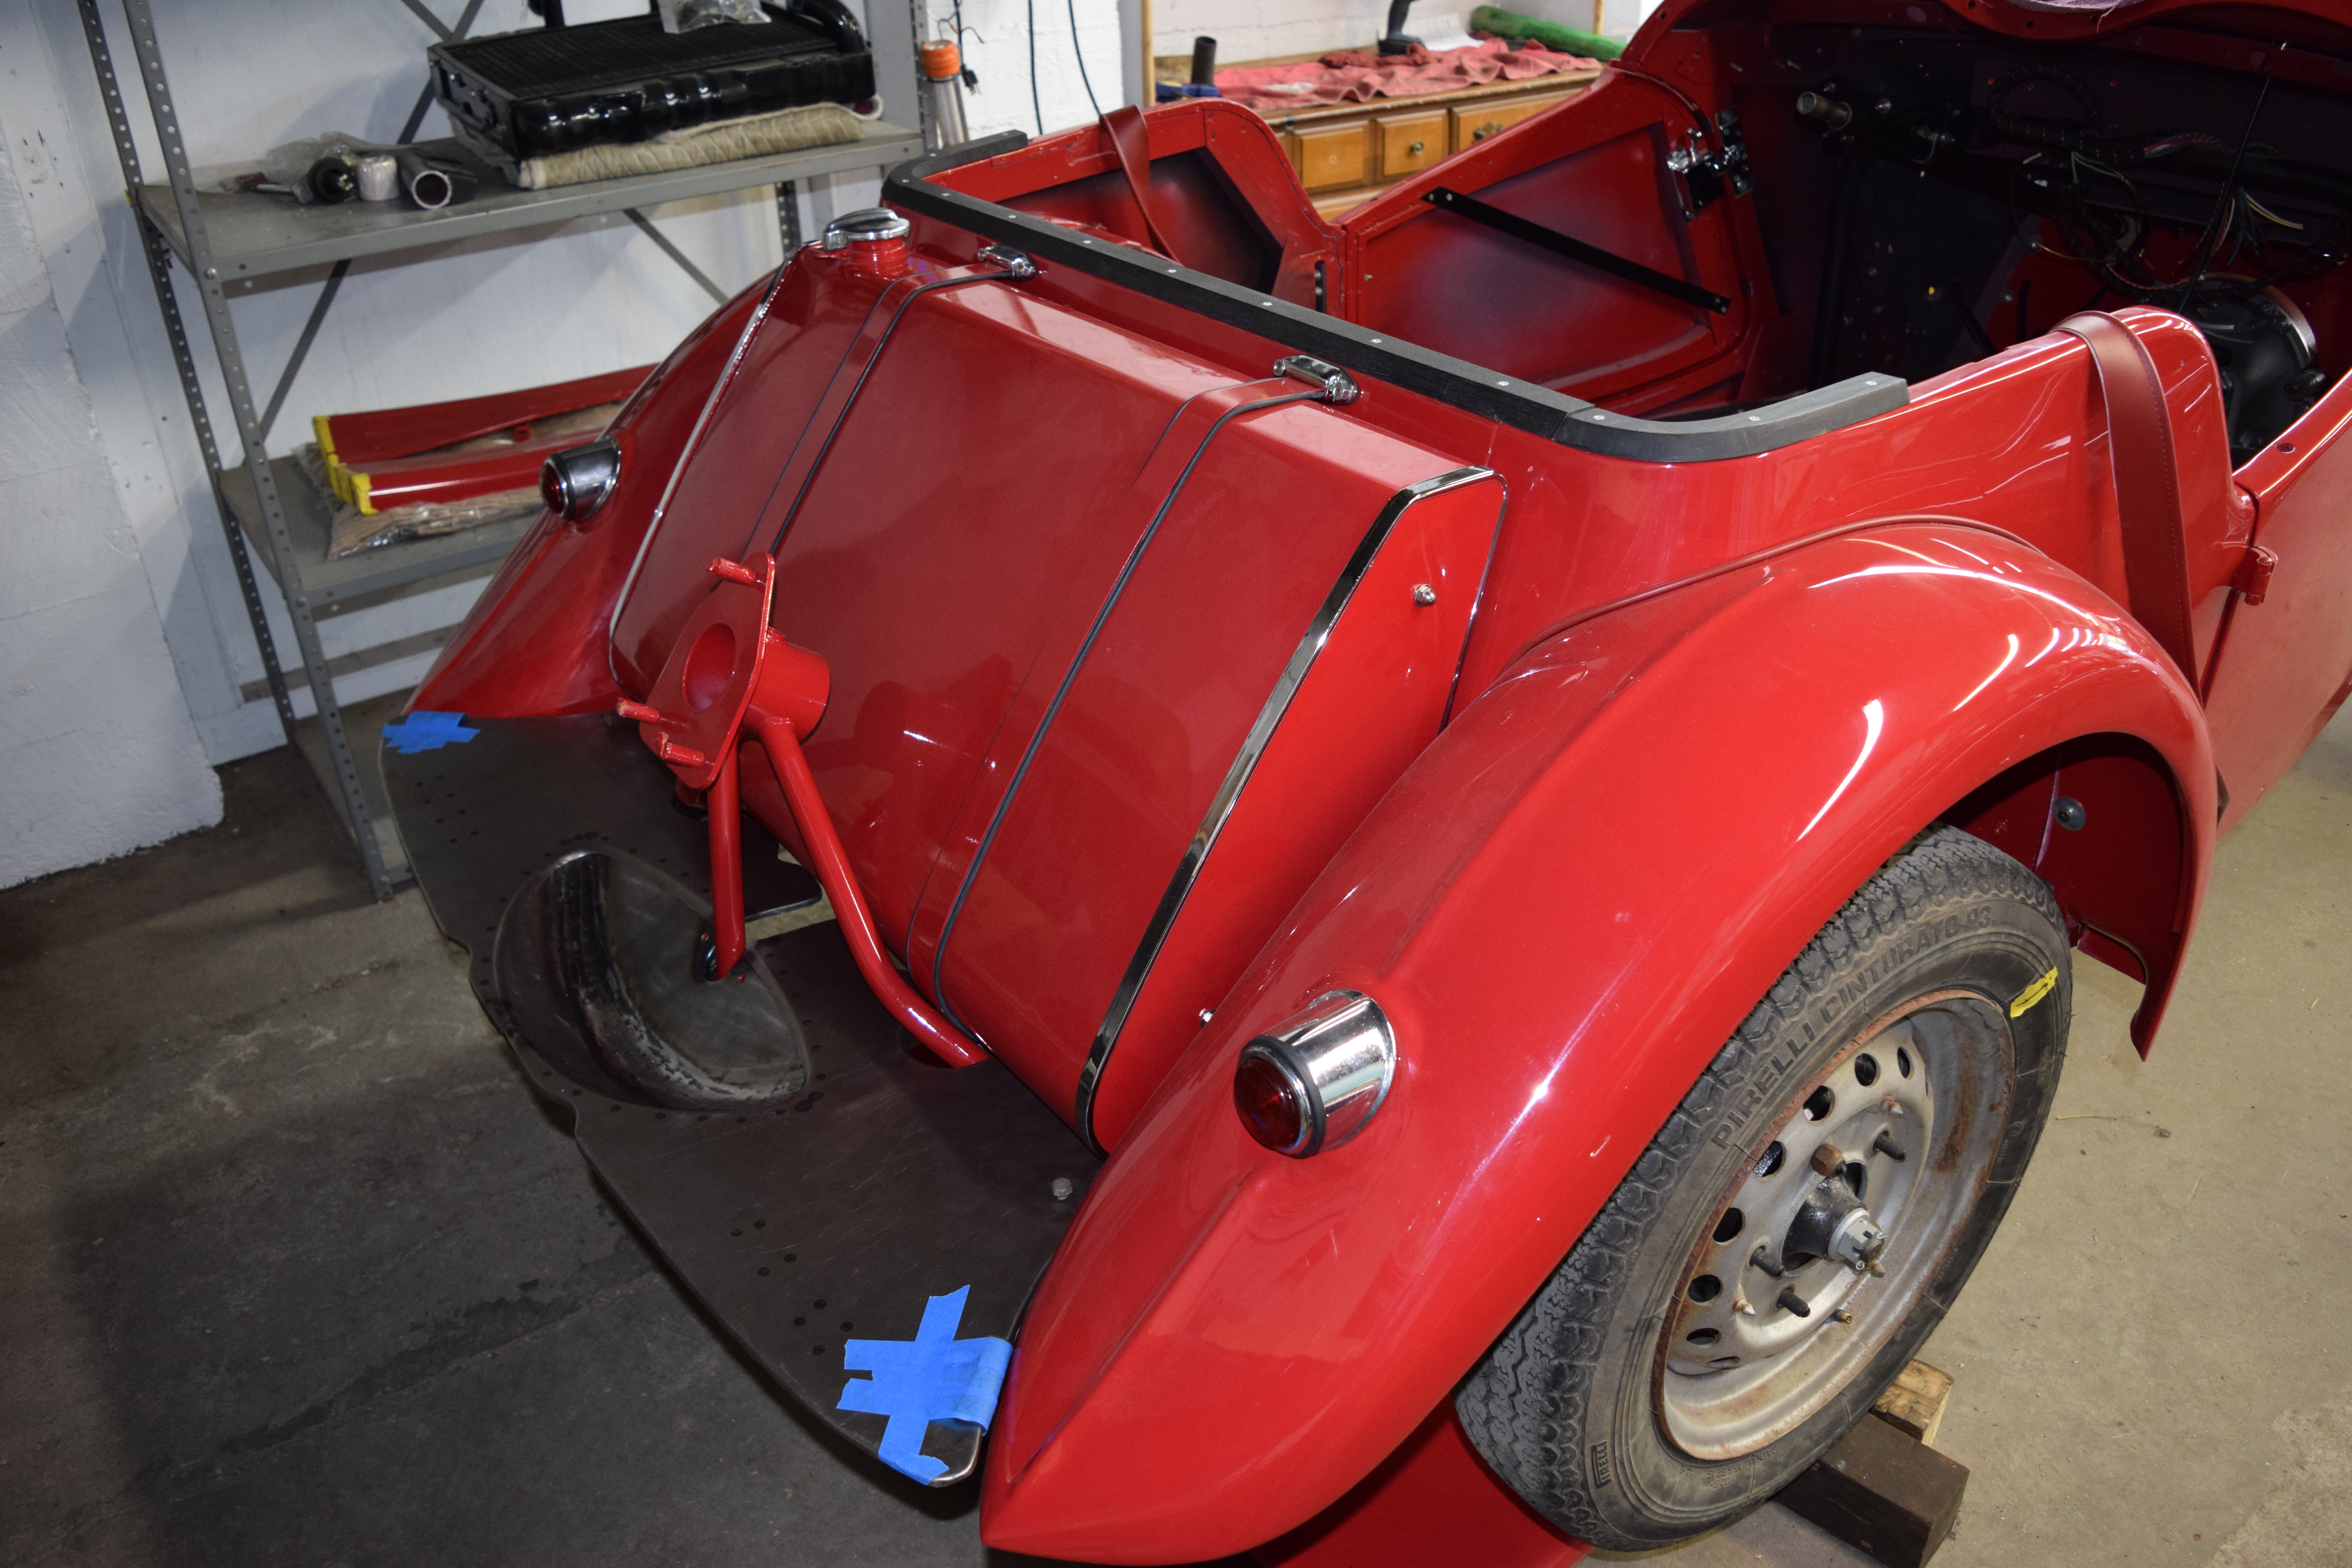 Sports car services lets take a brief minute or two to discuss the history of the mg and their tf and tf 1500 model mg was a european car company founded in 1924 by william vanachro Images